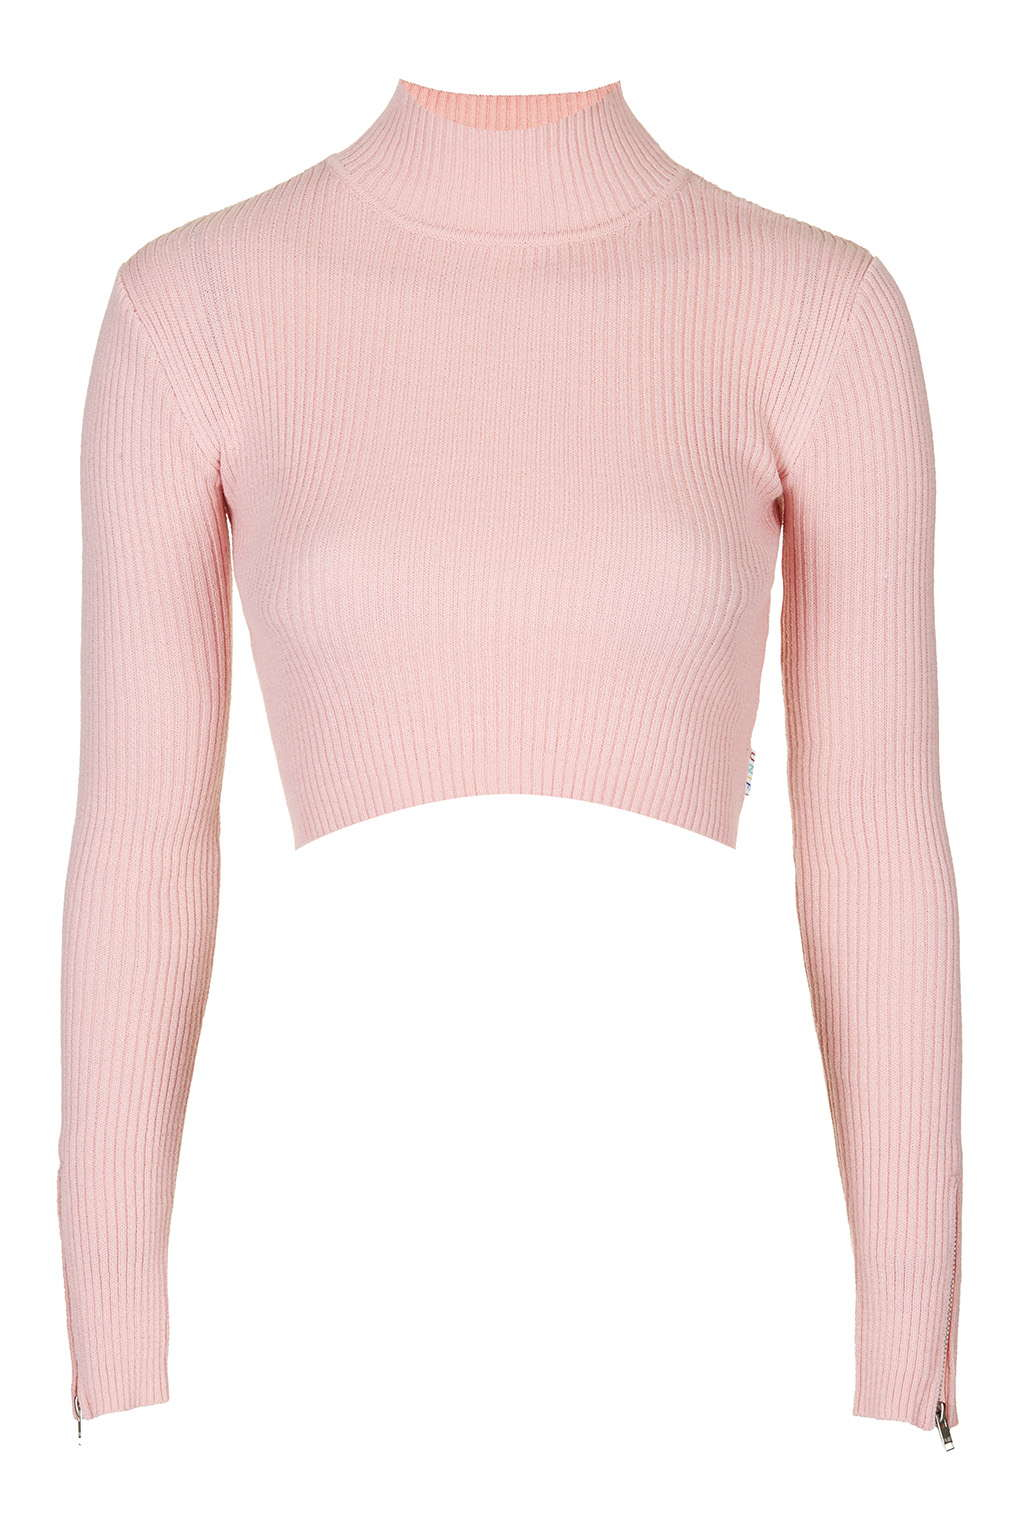 Lyst - TOPSHOP Turtle Neck Crop Top By Unif in Pink c4ba8e027